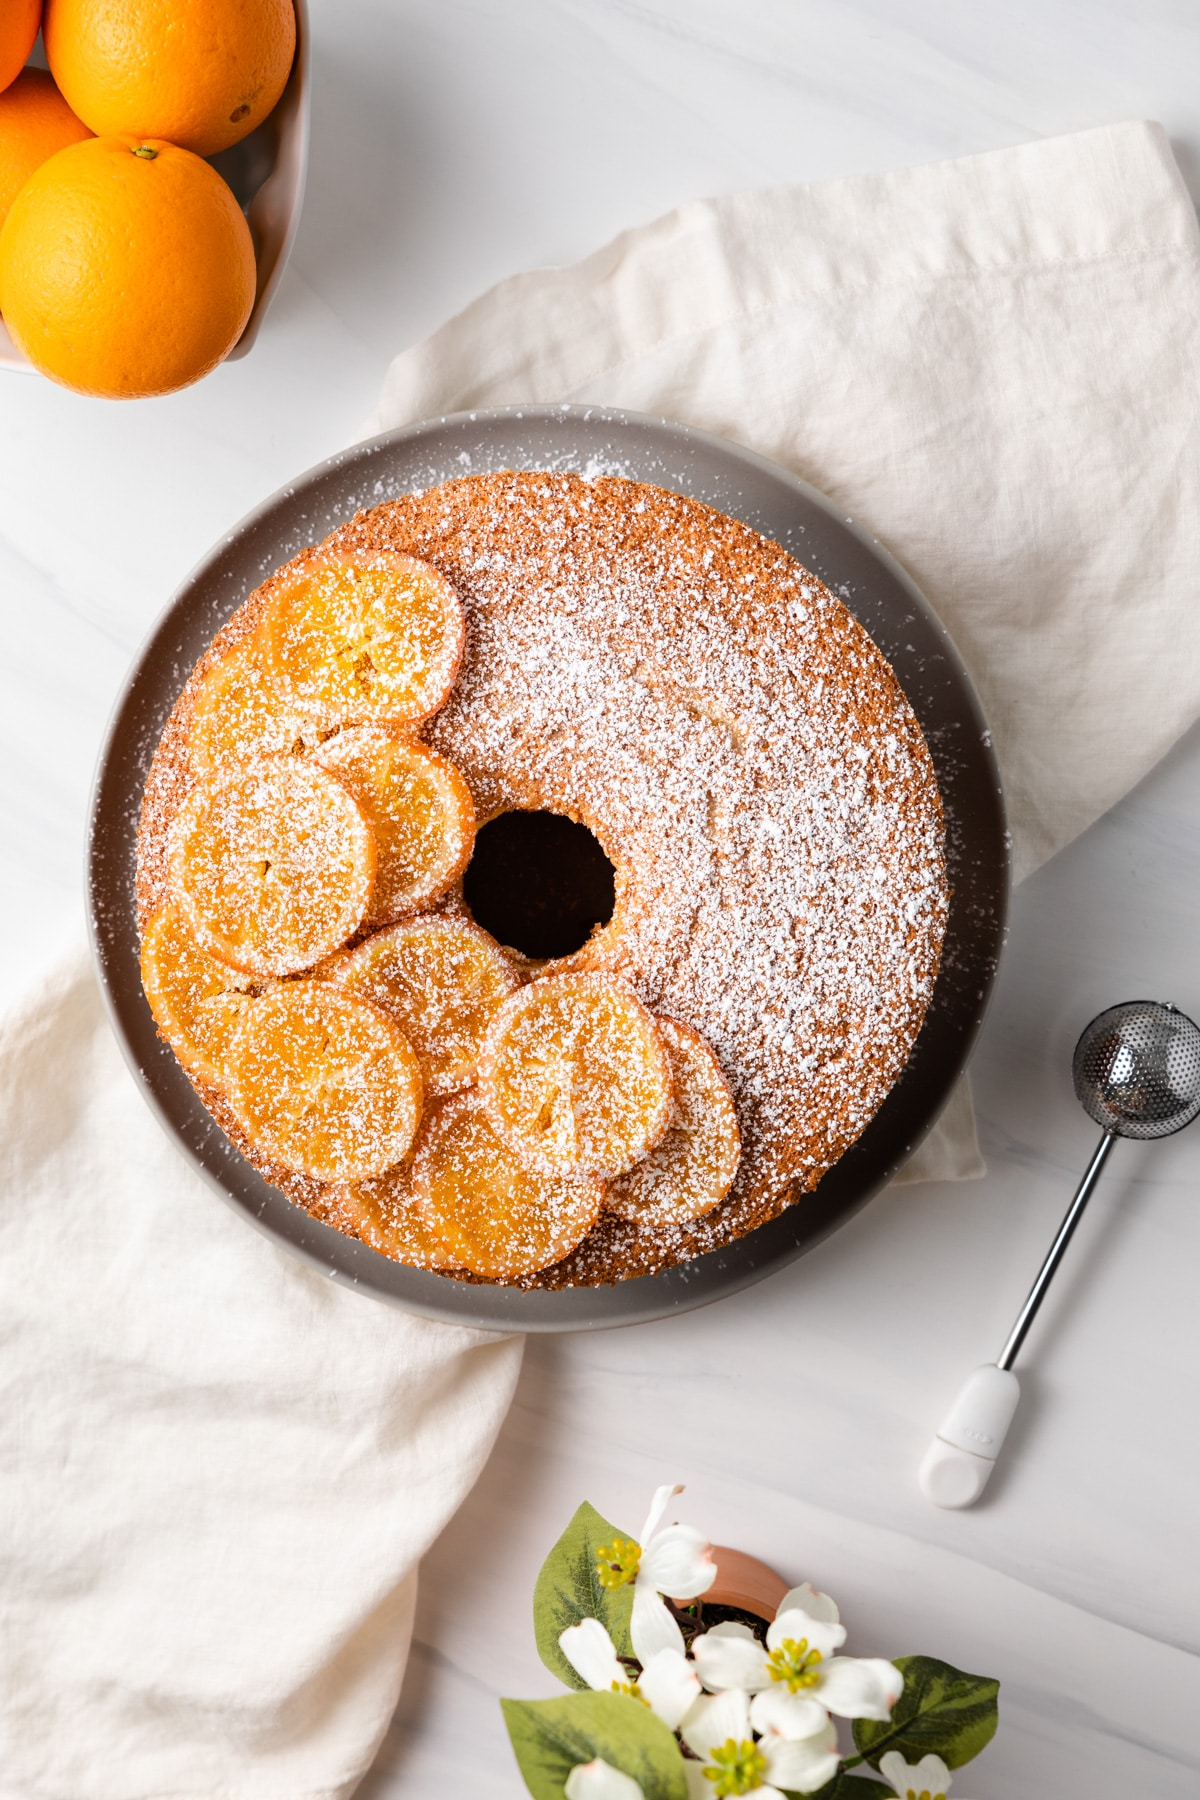 overhead of orange chiffon cake decorated with candy orange slices and powdered sugar